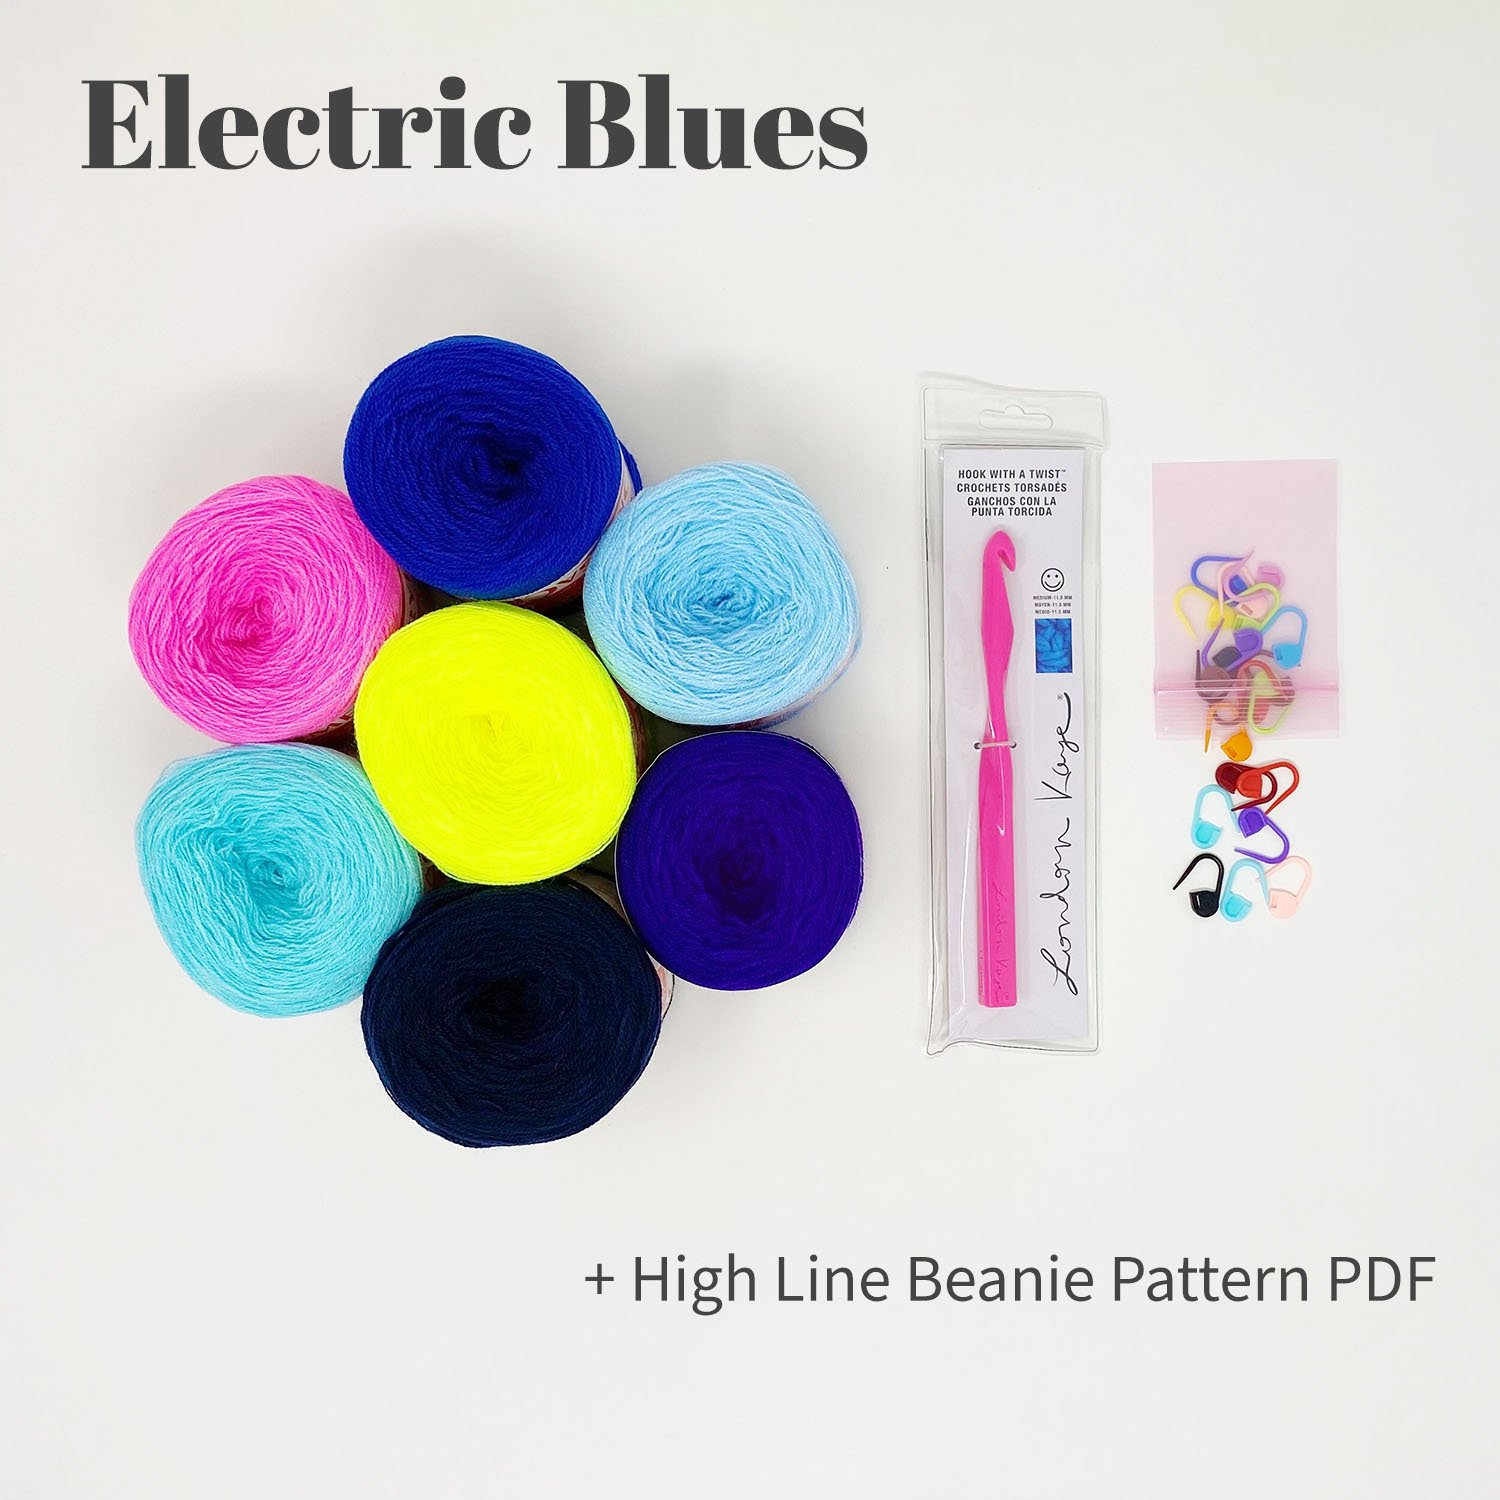 High Line Beanie Bundle - Electric Blues - labeled